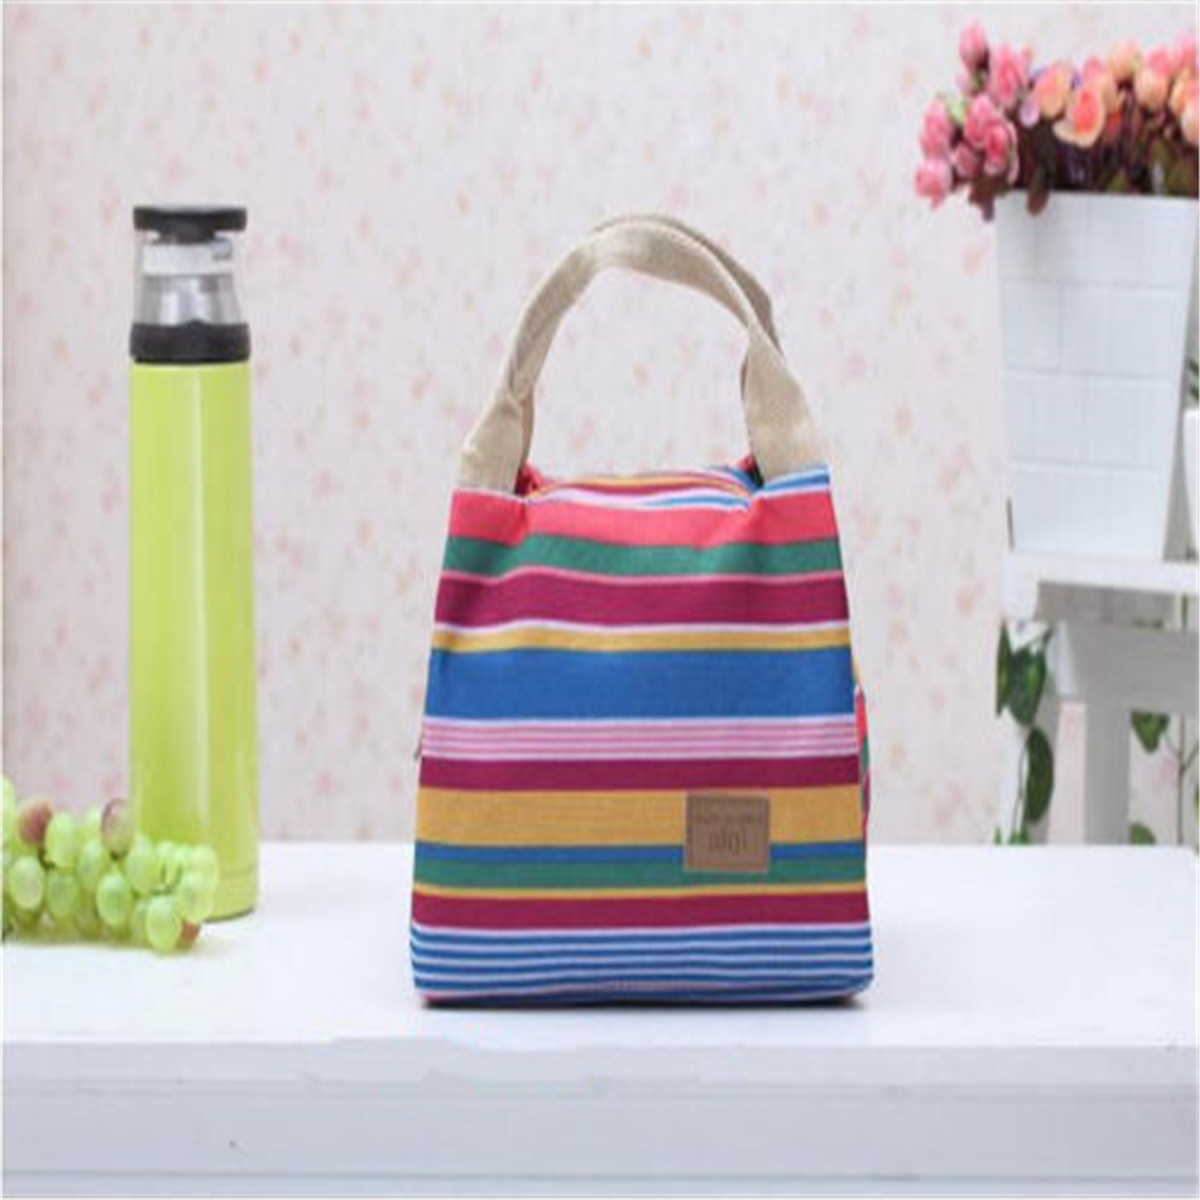 2018 New Style Fashion Lunch Bag Insulated Cooler Picnic Storage Box For Work Men Or Women Kids School